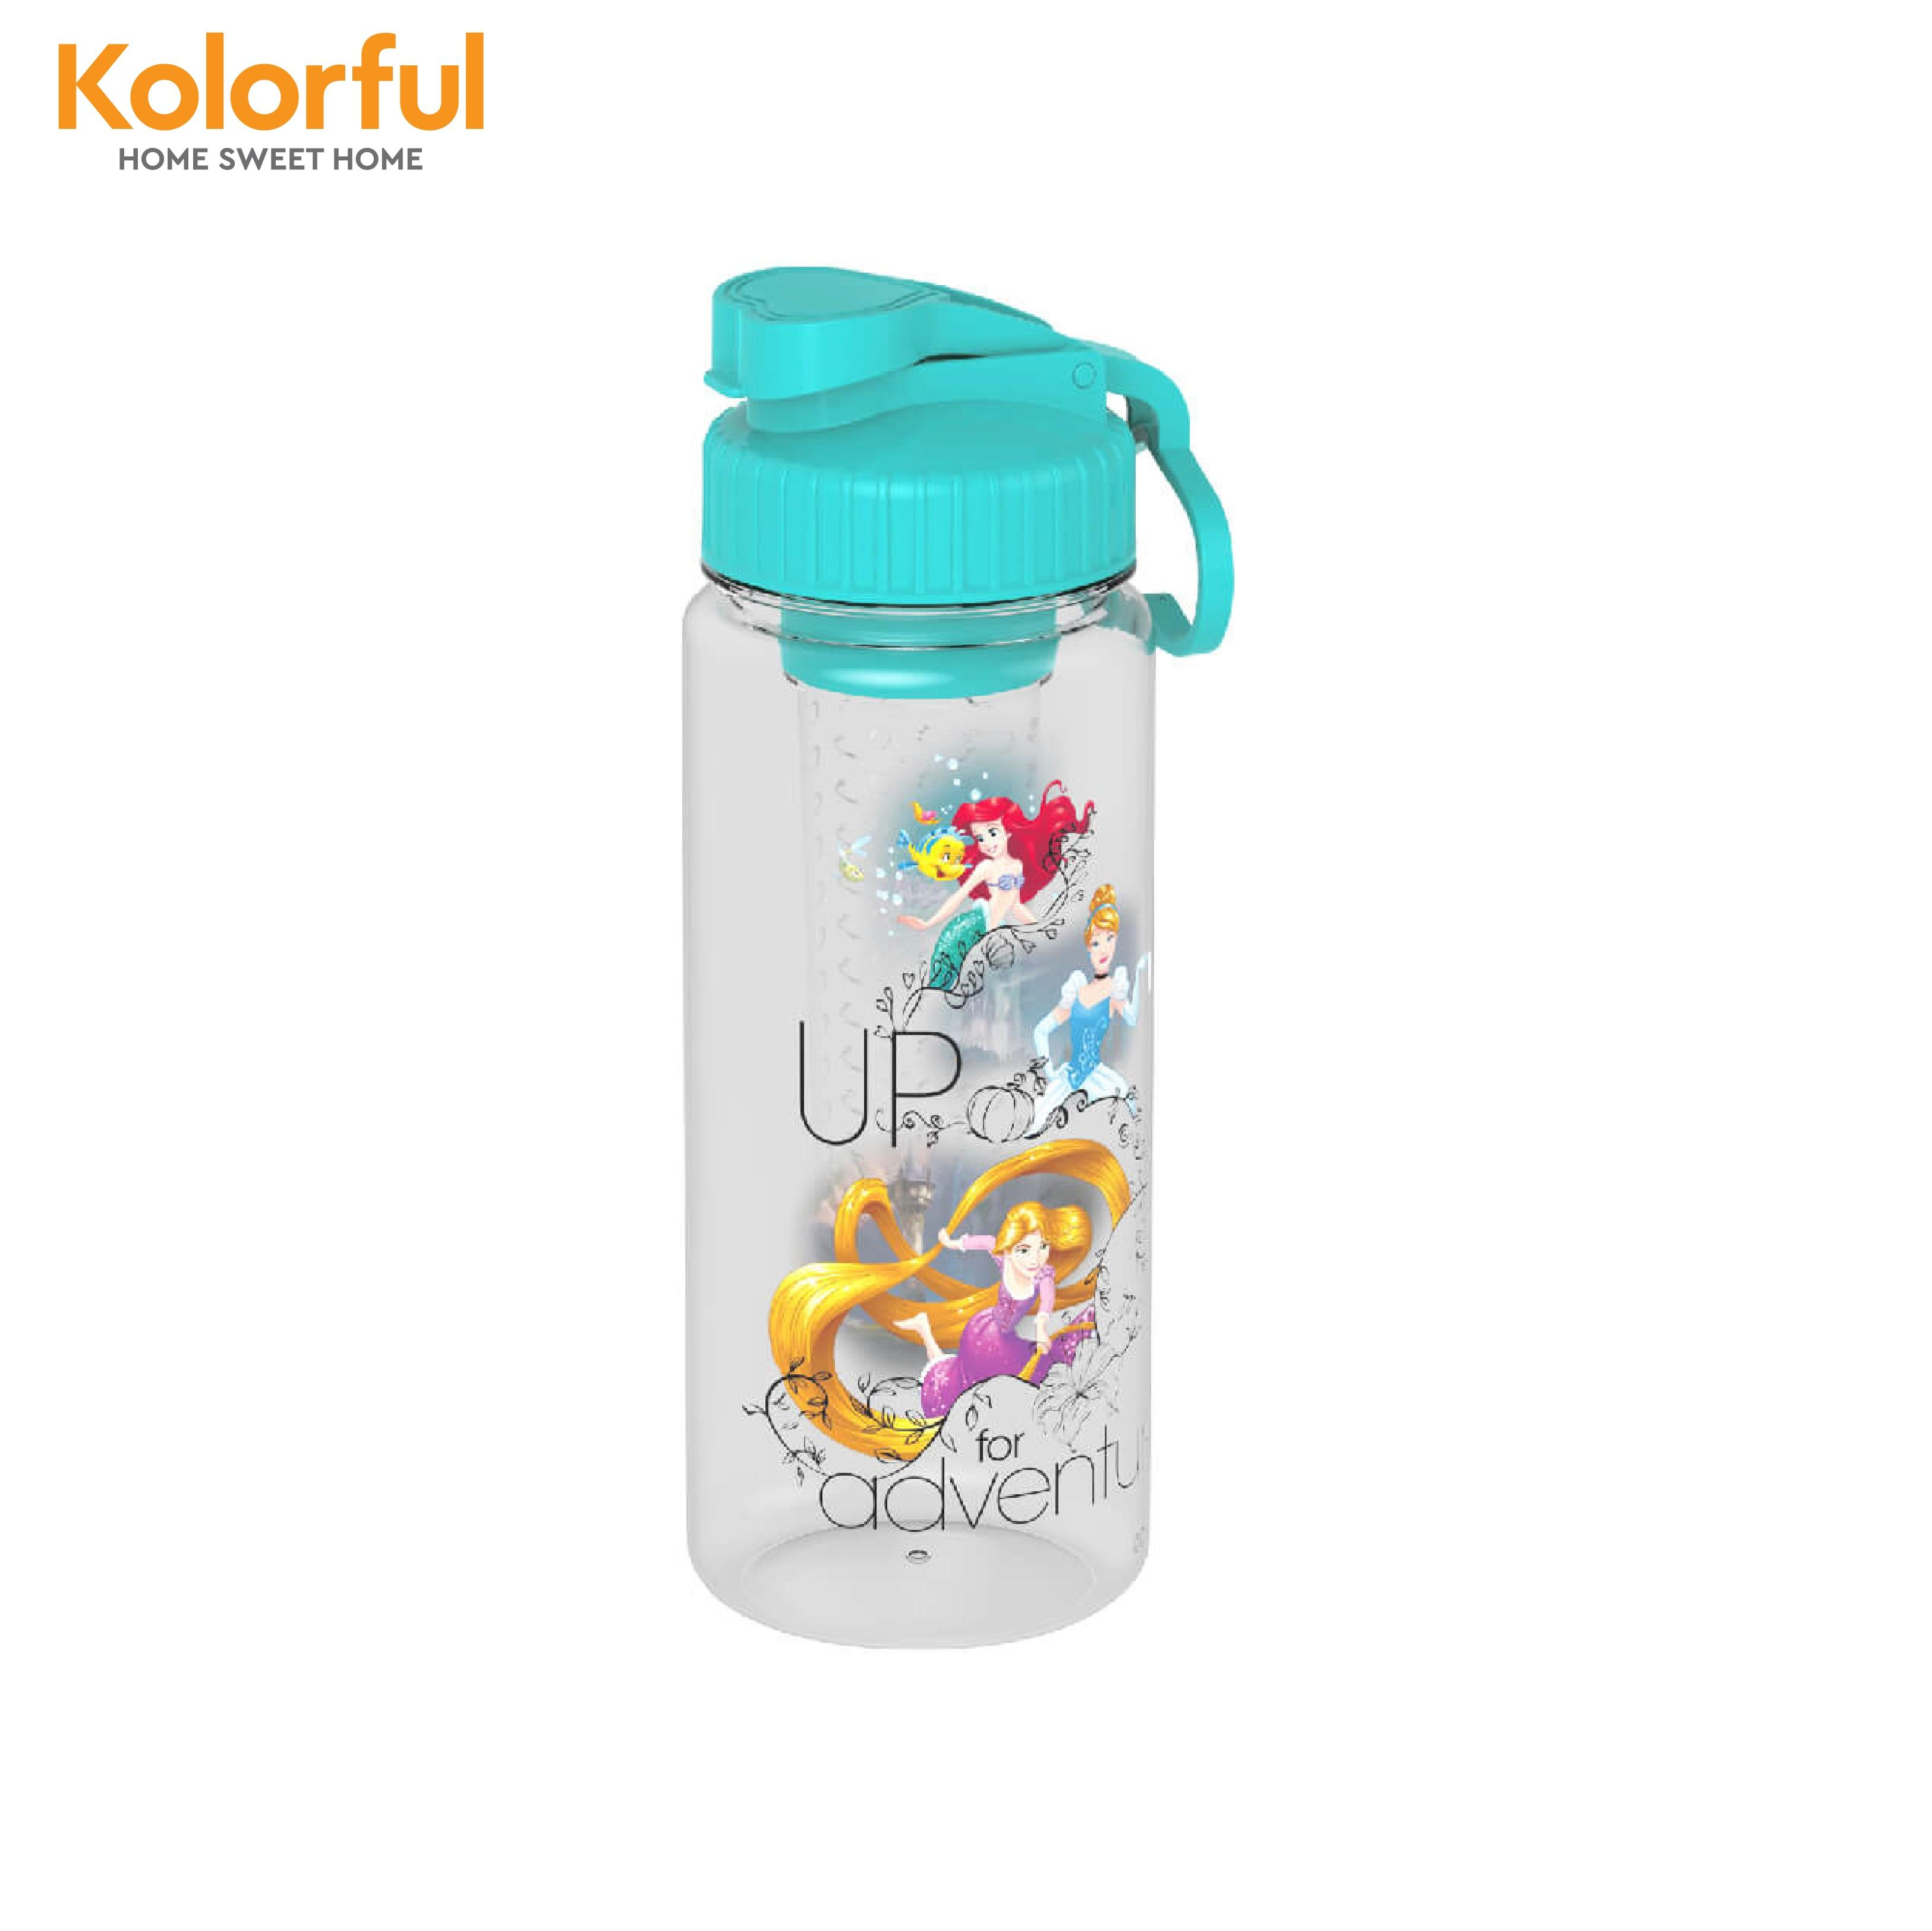 Sweetie water bottles P1803 100ml are good plastic material no BPA so safe for baby